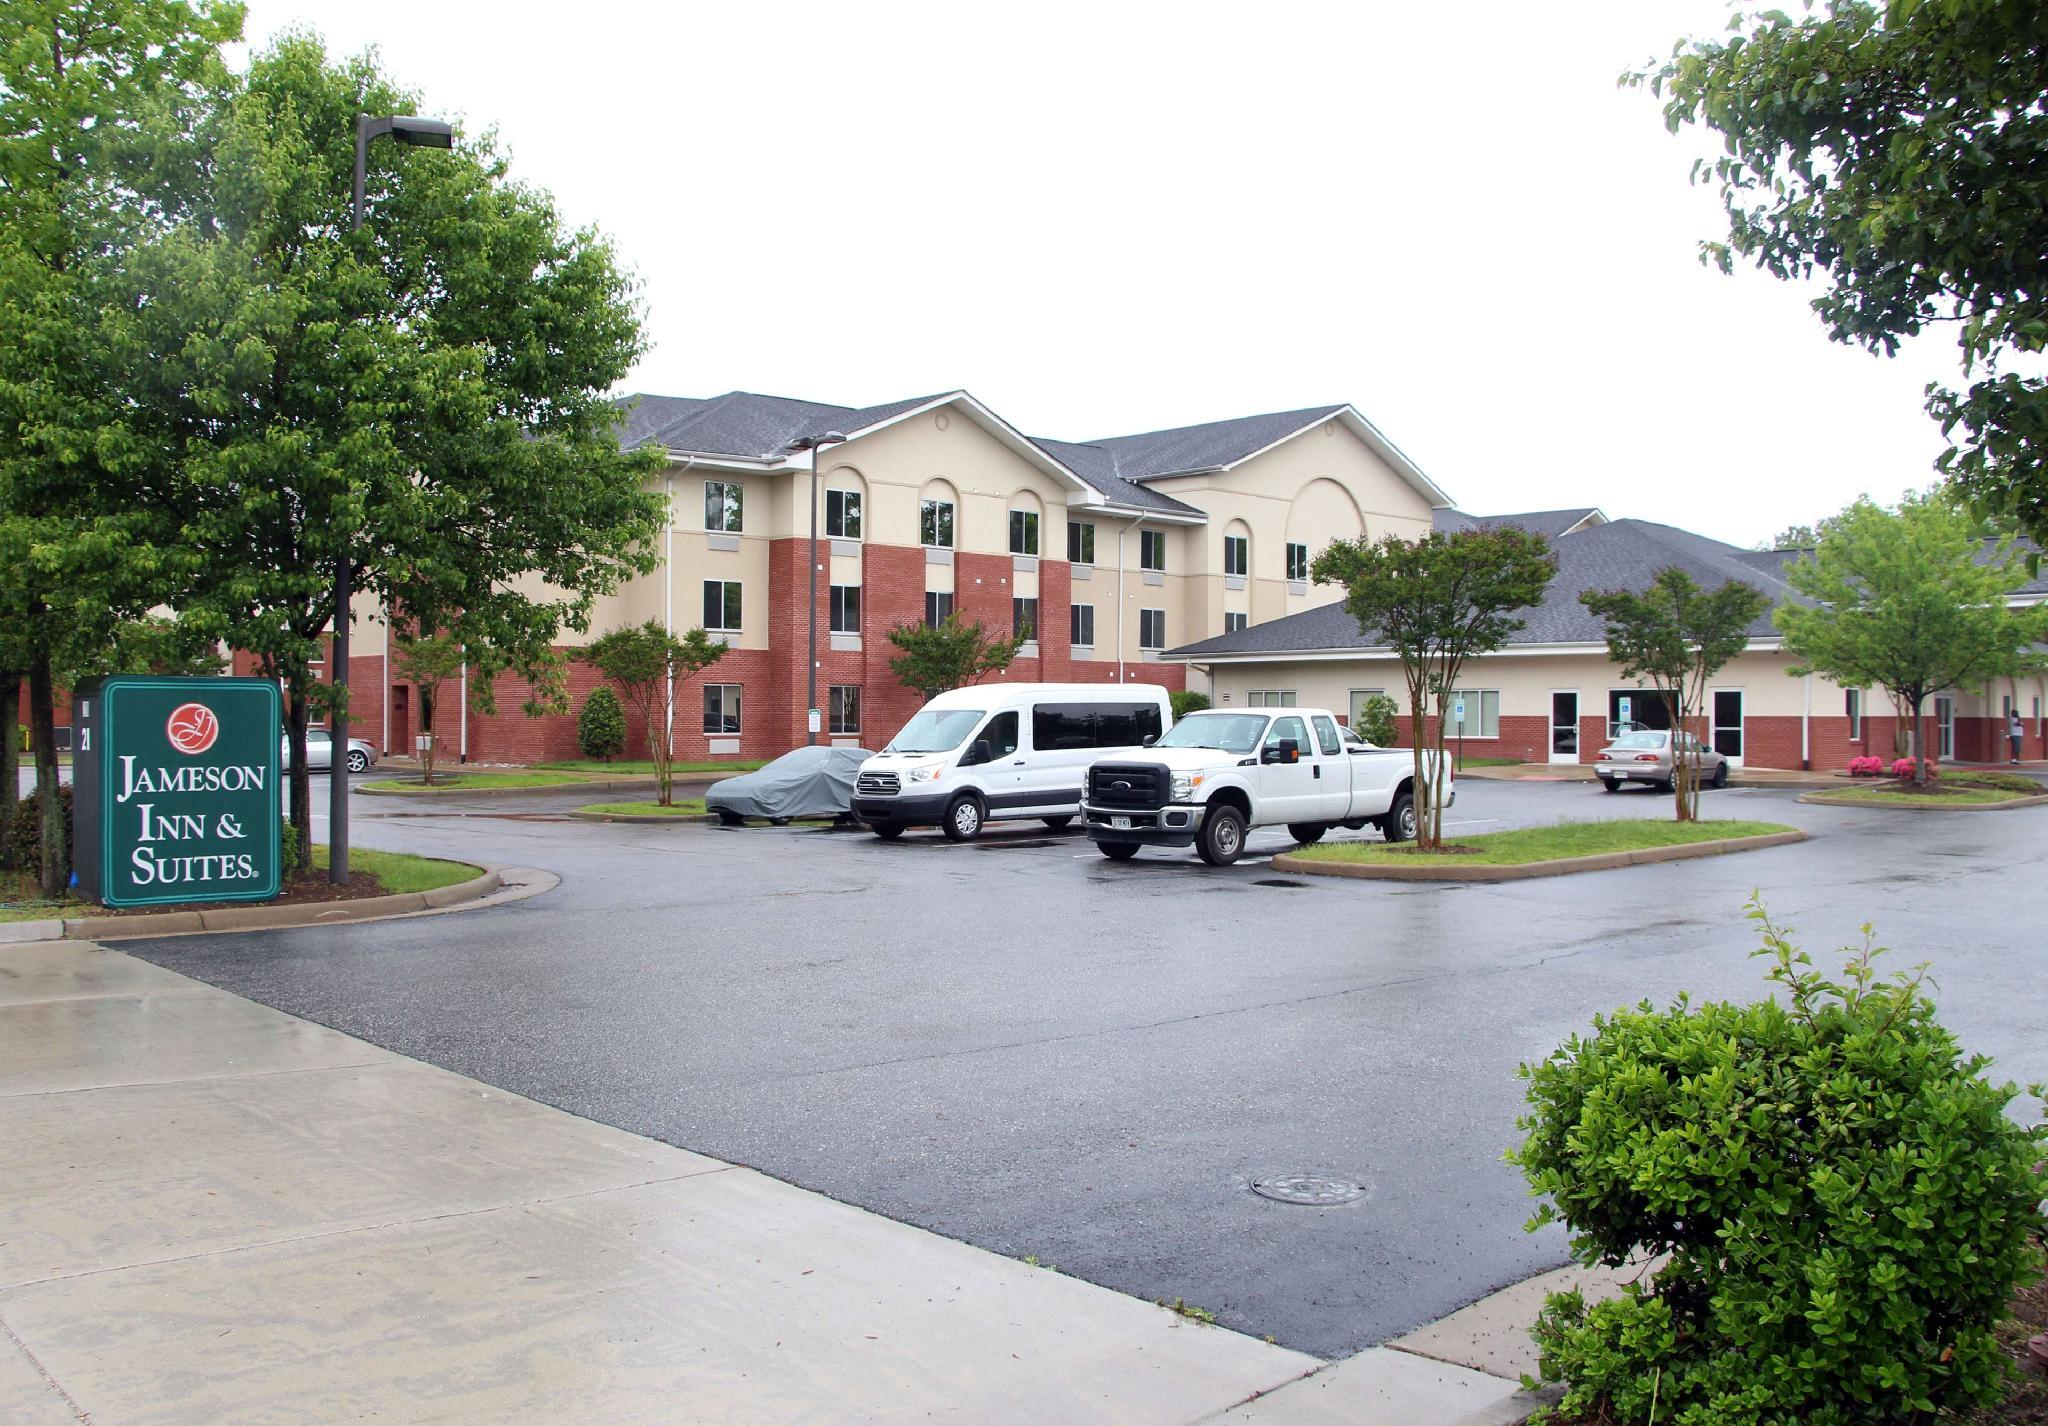 Jameson Inn & Suites Newport News, Newport News